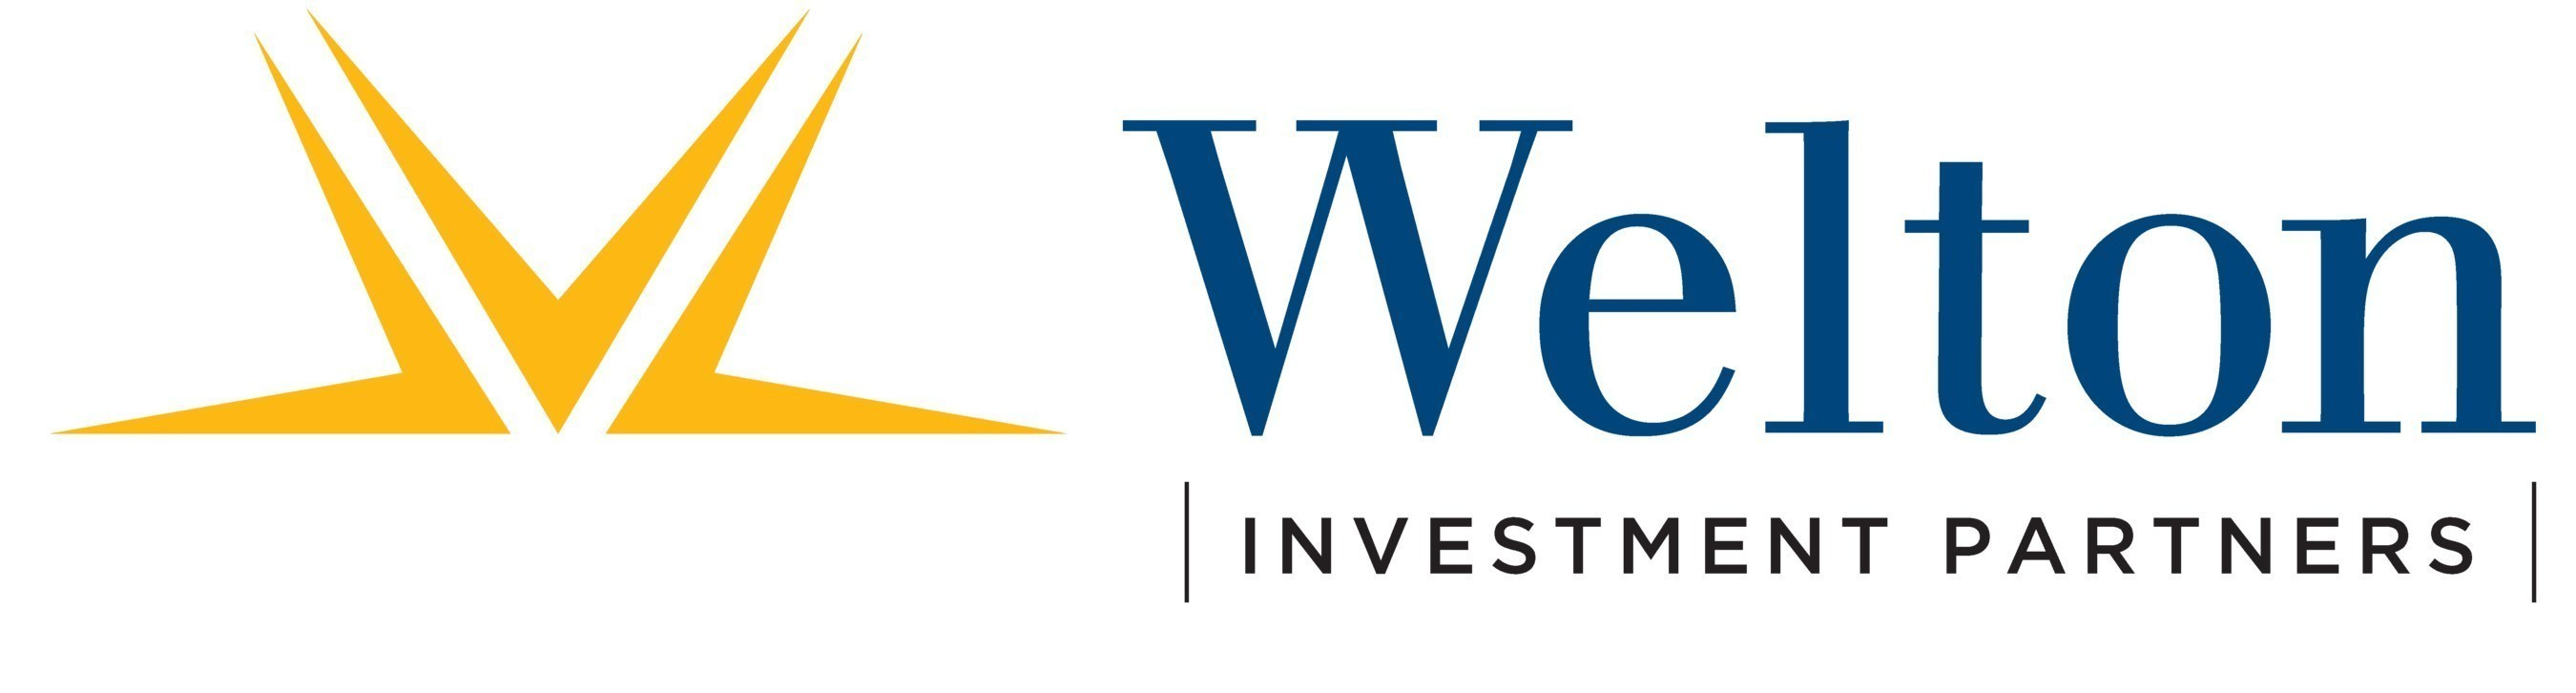 Welton Investment Partners Logo